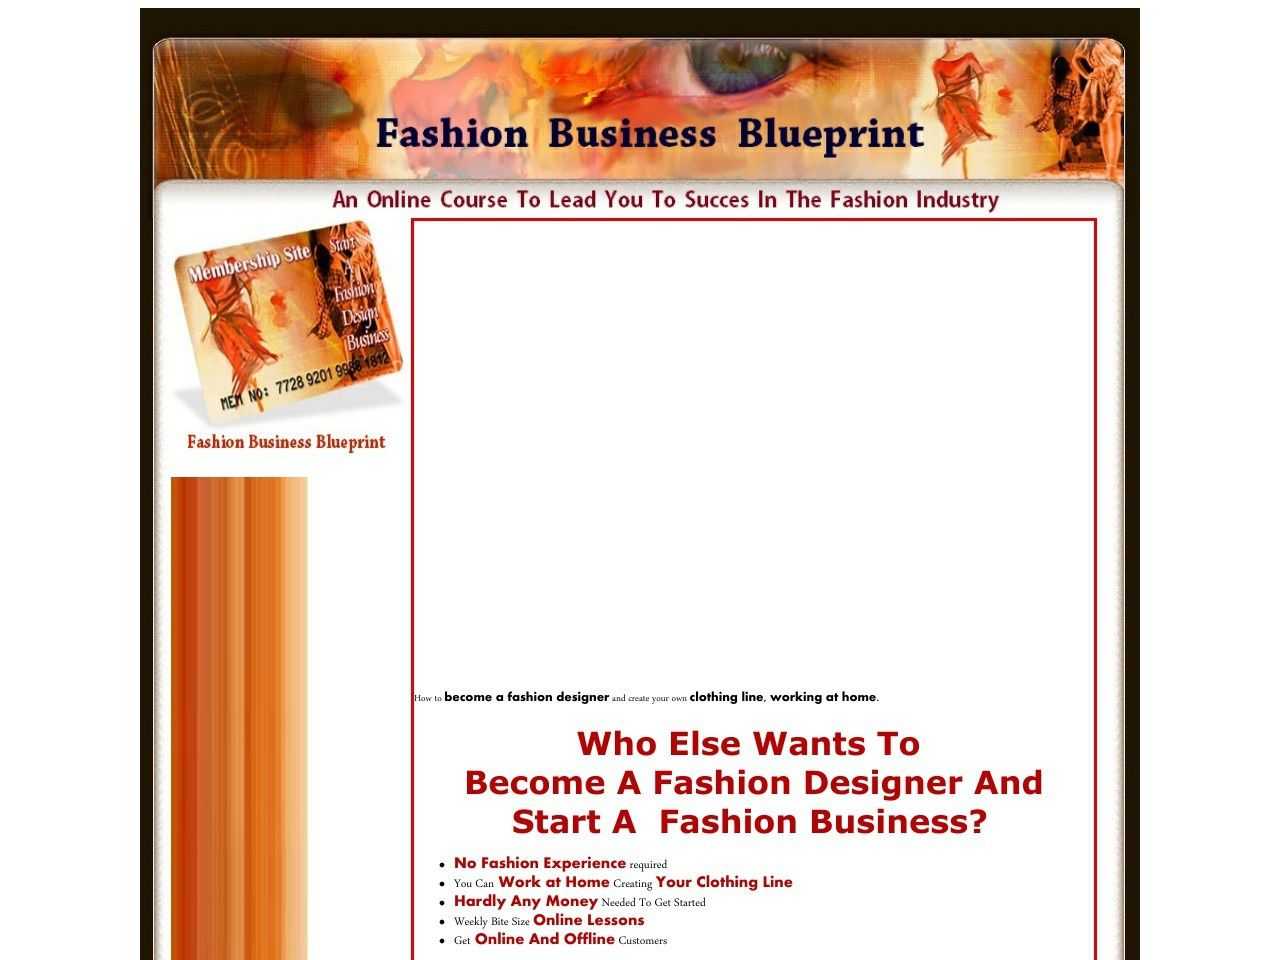 Fashion Business Blueprint Fashion Design Clothing Line How To Become A Fashion Designer Manfee Over Blog Com